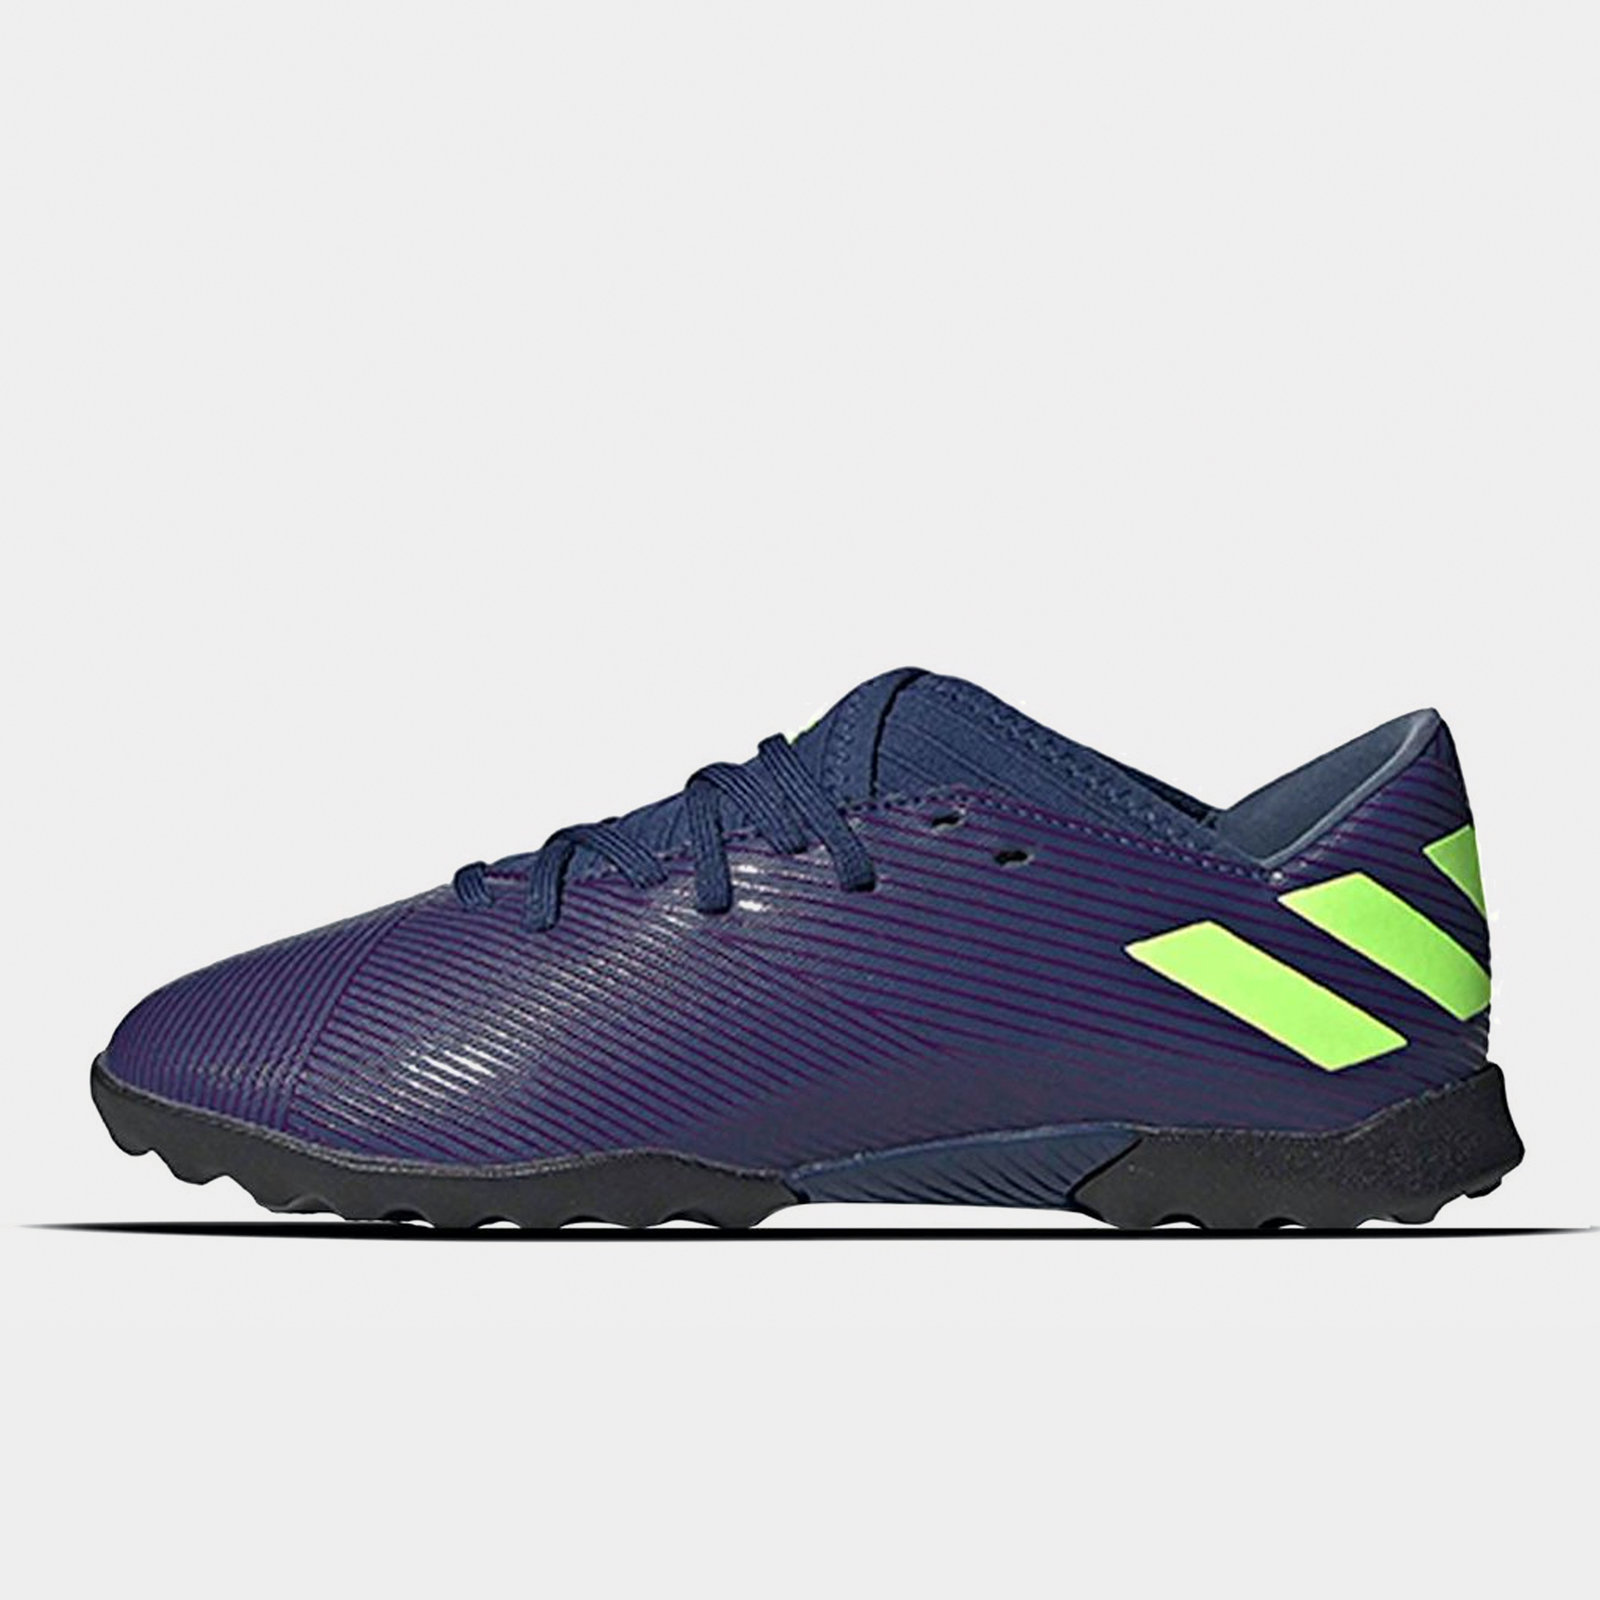 Nemeziz Messi 19.3 Junior Astro Turf Trainers